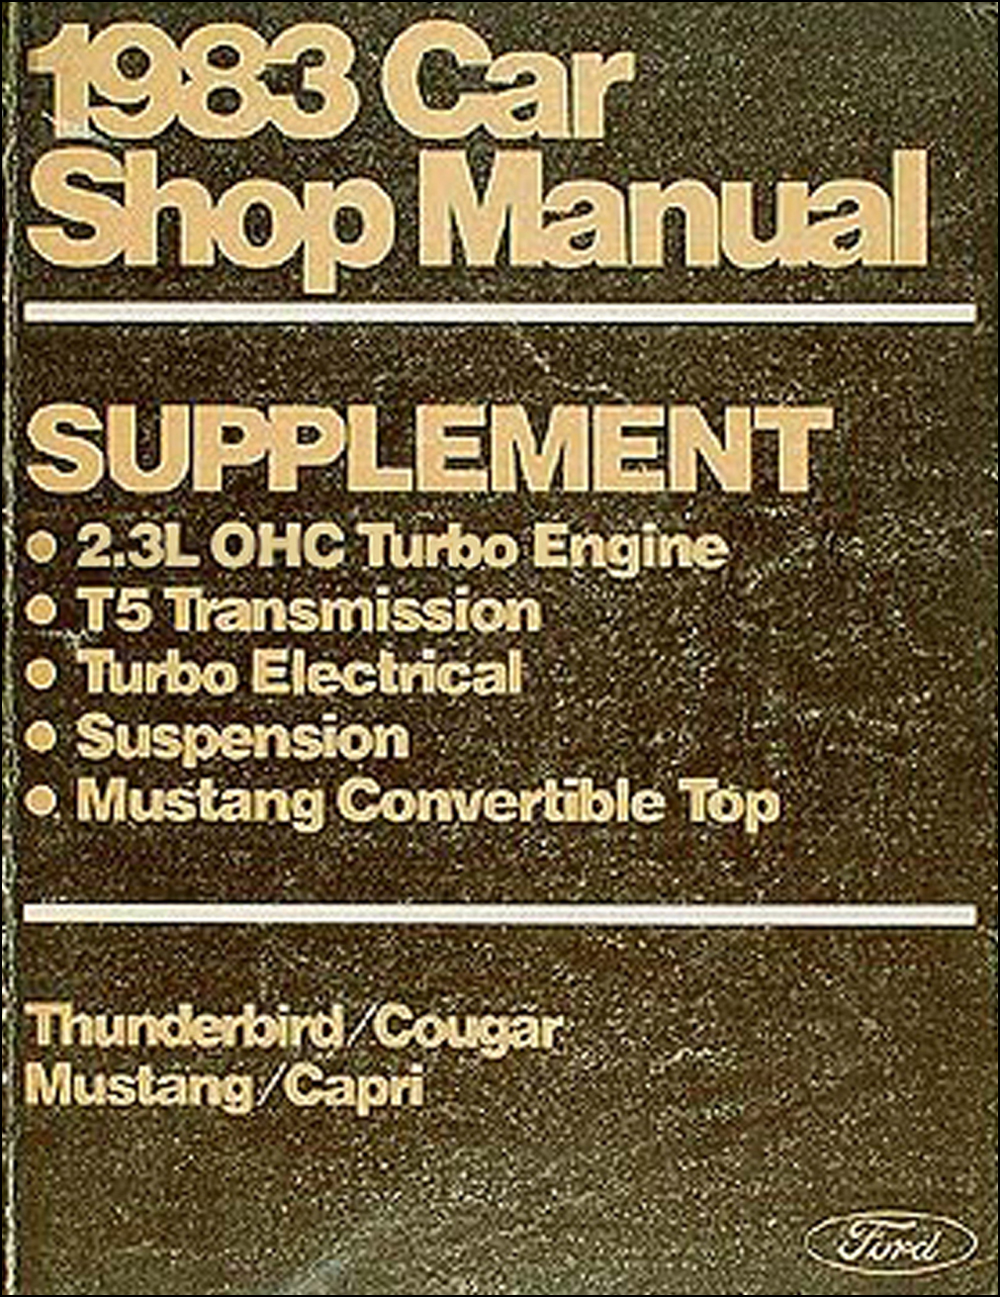 1983 Mustang Capri Electrical And Vacuum Troubleshooting